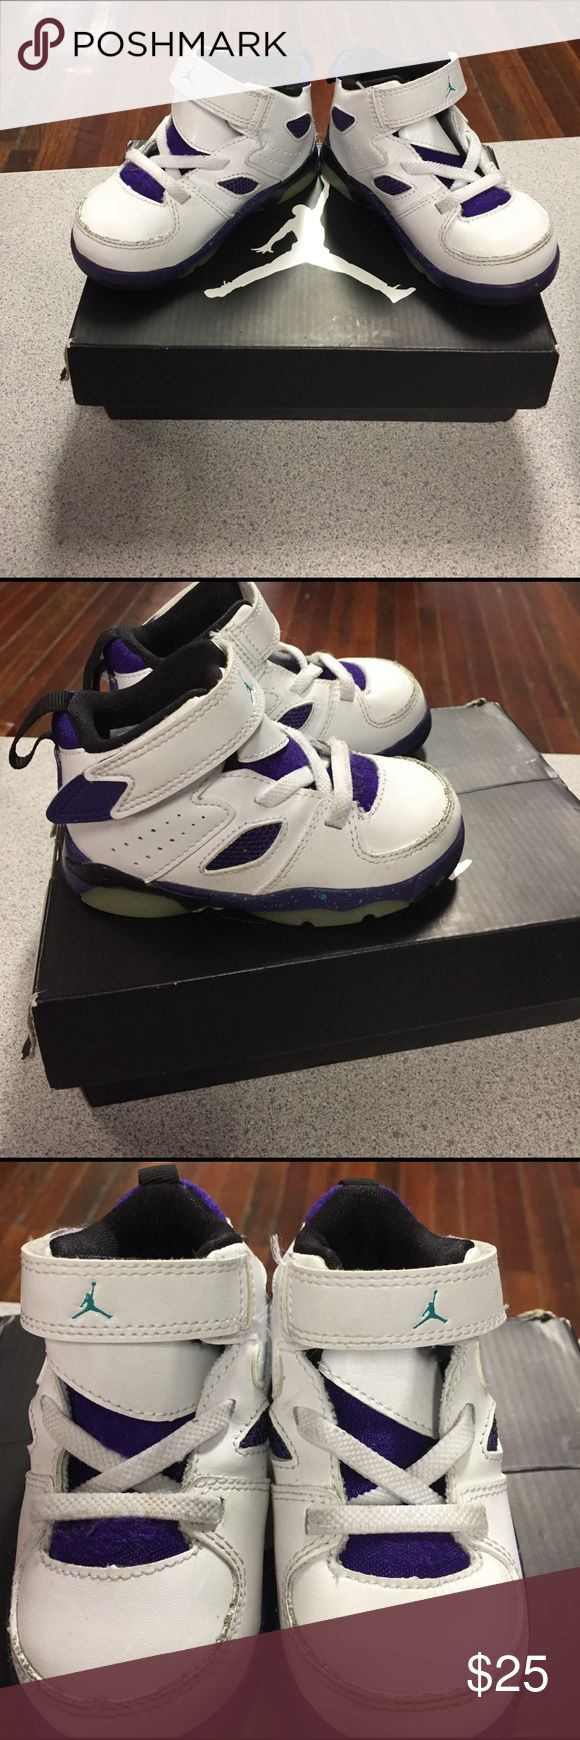 Baby jordans Very nice! Great condition! Toddler size. Jordan Shoes Sneakers